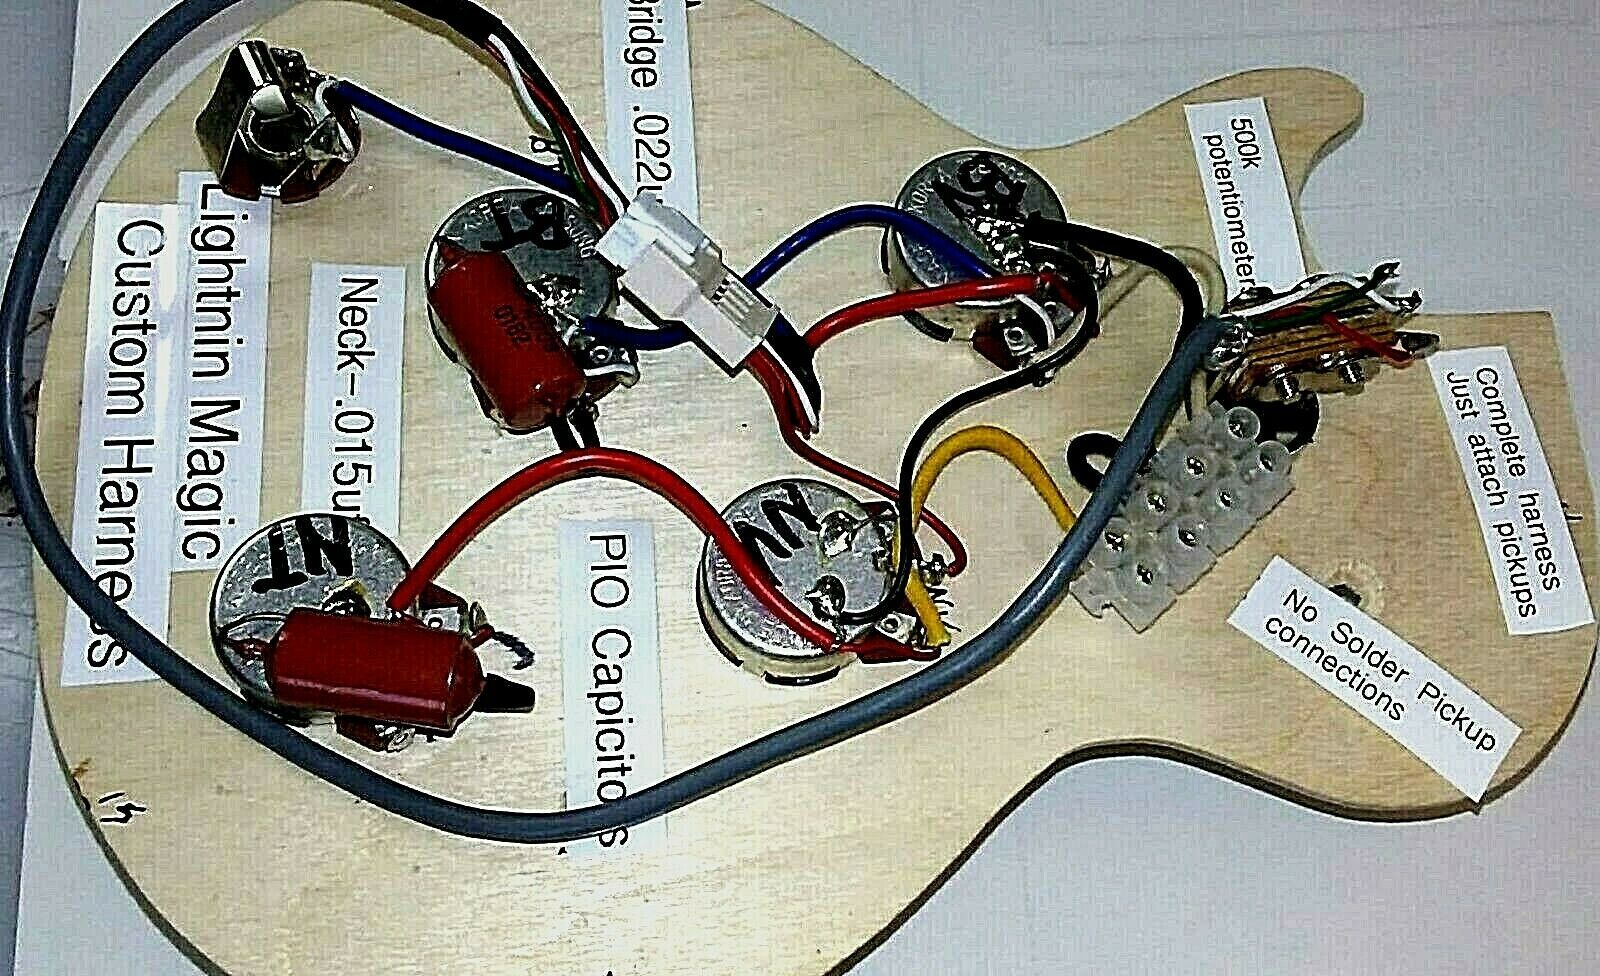 Solderless Installation Wiring Harness For Your Imported Lp Sg Or Dot Style Axe Ebay Harness Epiphone Sg Dots